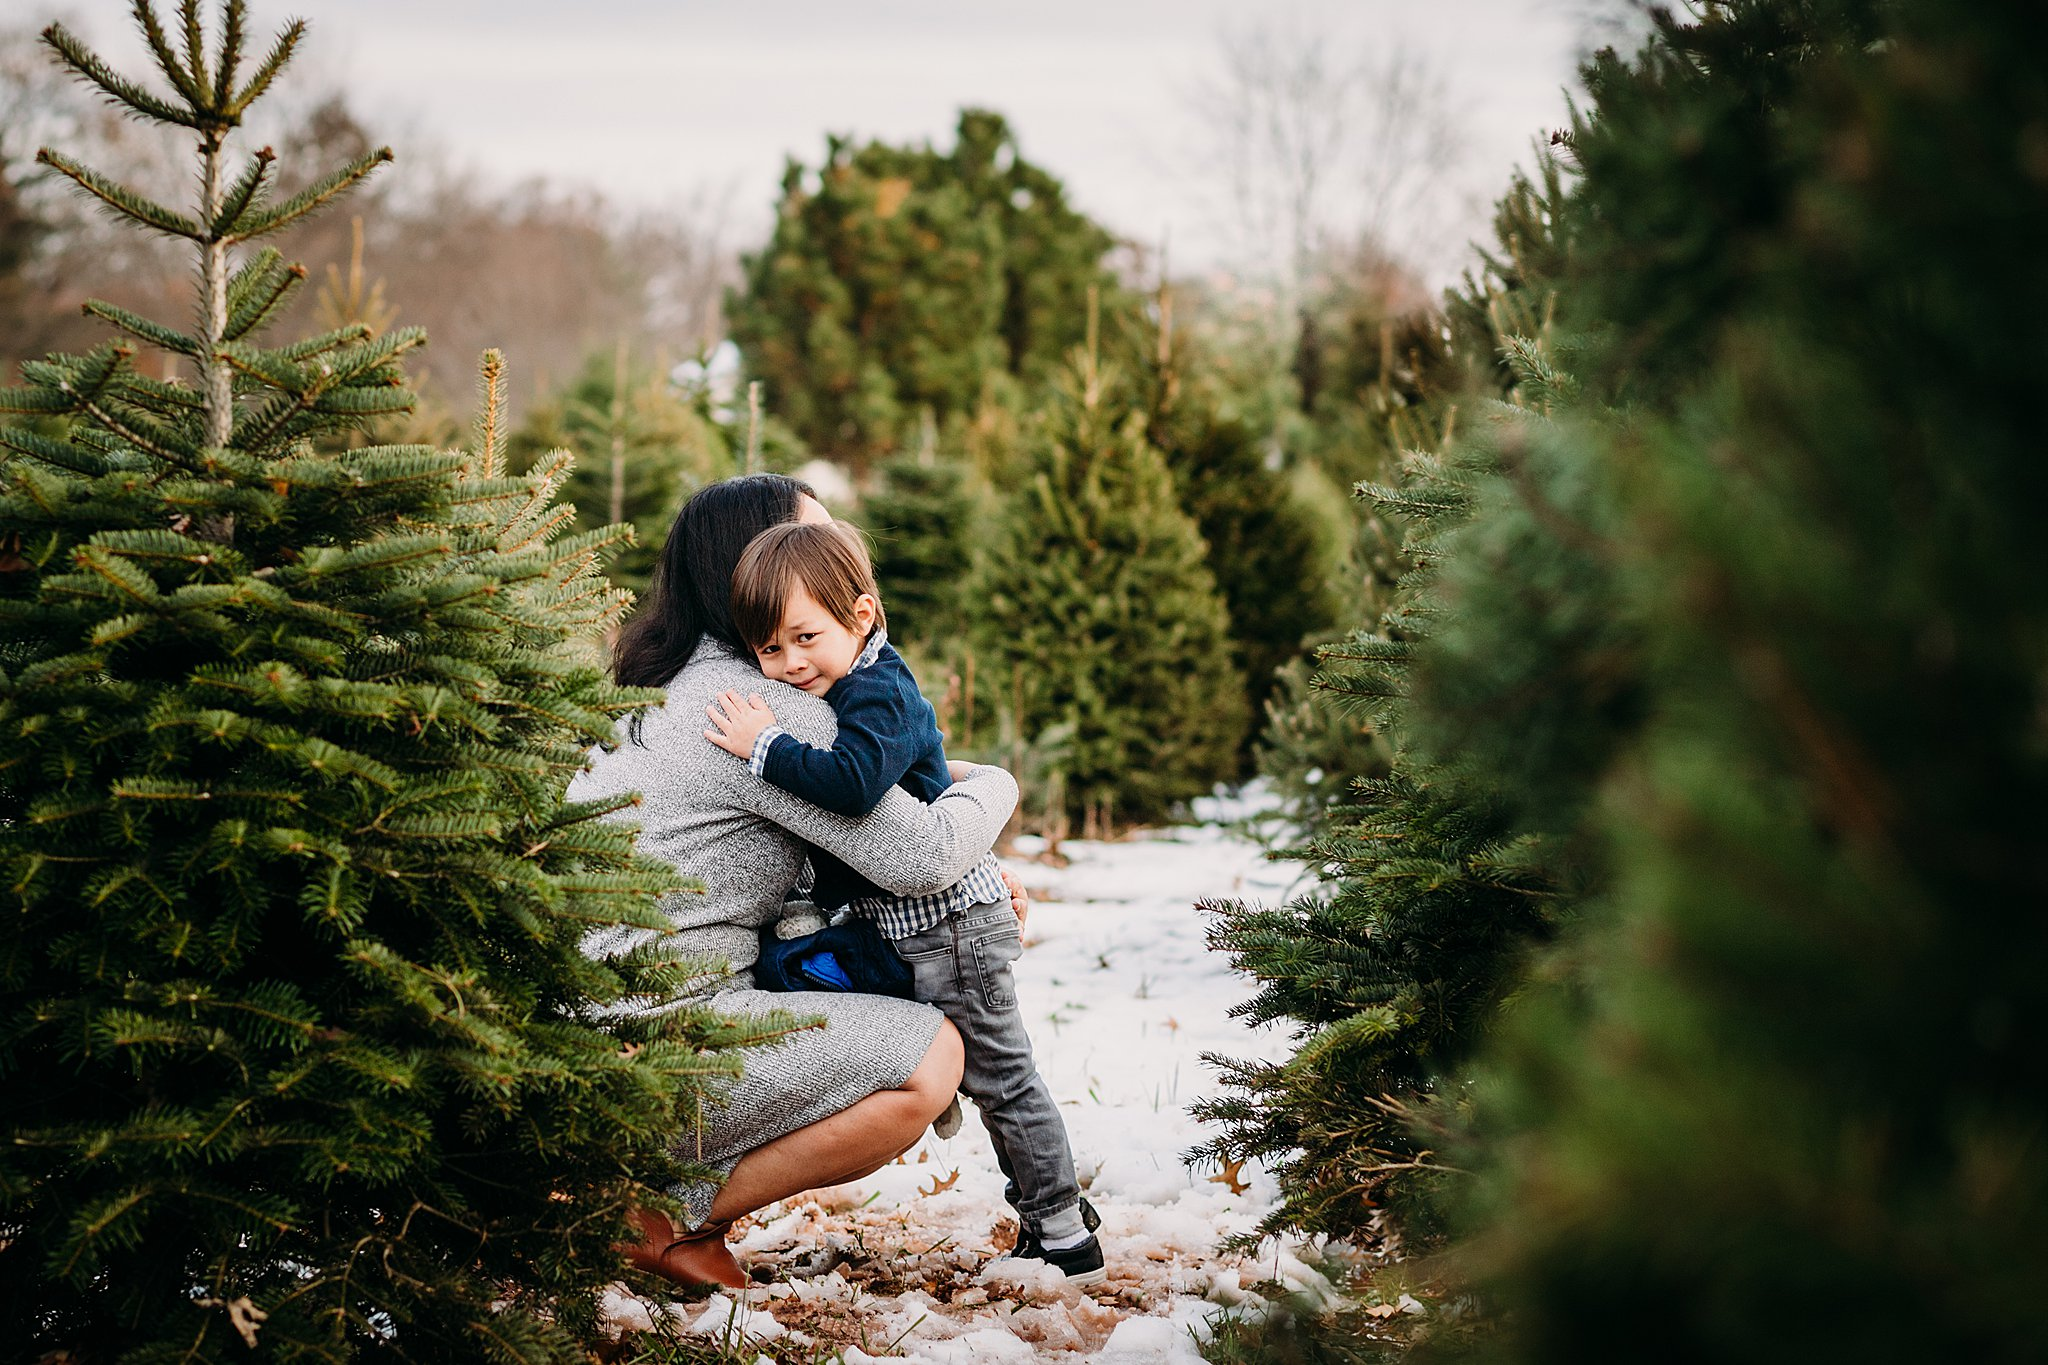 Christmas Tree Farm Photography near Philadelphia_ desiree hoelzle photography_0014.jpg